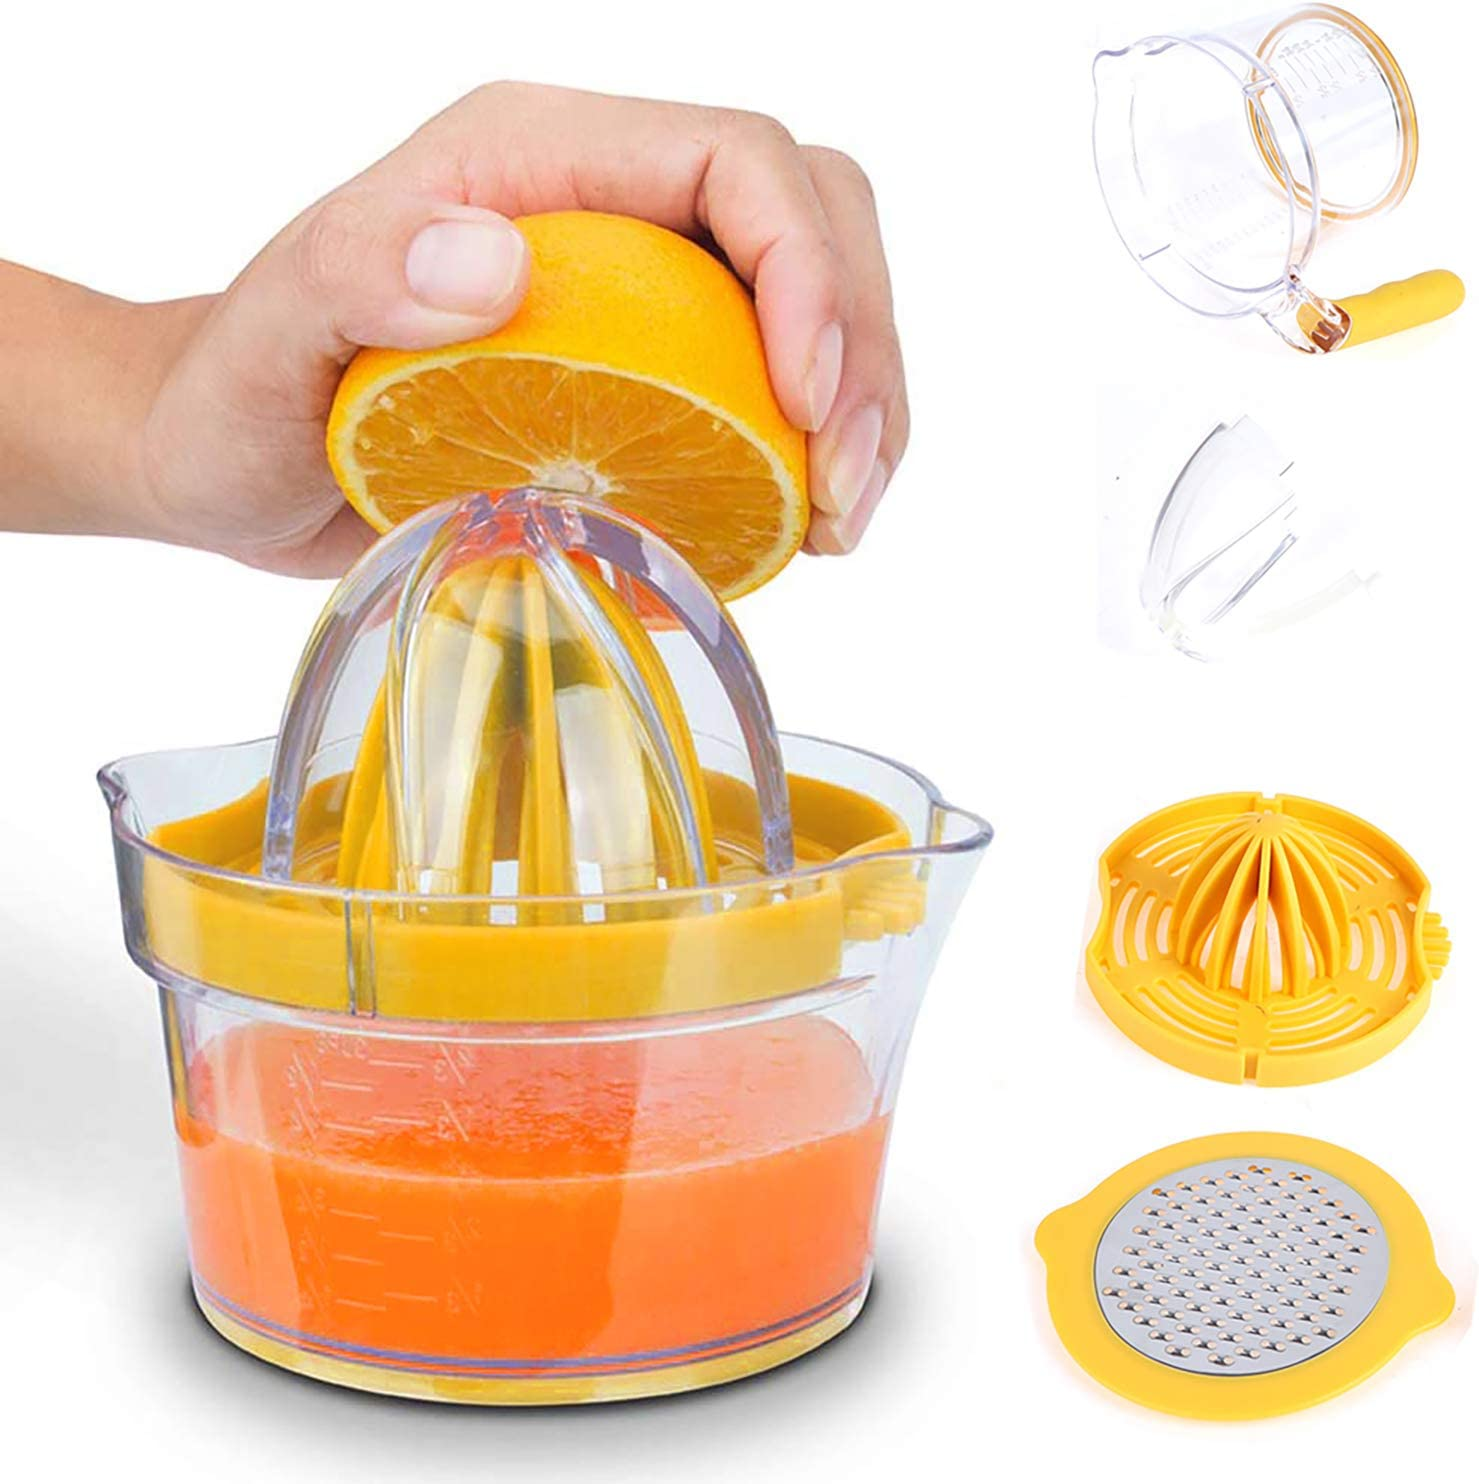 Welecom Manual Juicer Citrus Juicer Manual Hand Squeezer Fruit Lemon Lime Orange Squeezer with Cup Juicer Strainer,Built-in Measuring Cup Ginger Garlic Grater&Egg Separator,Non-Slip Silicone Handle